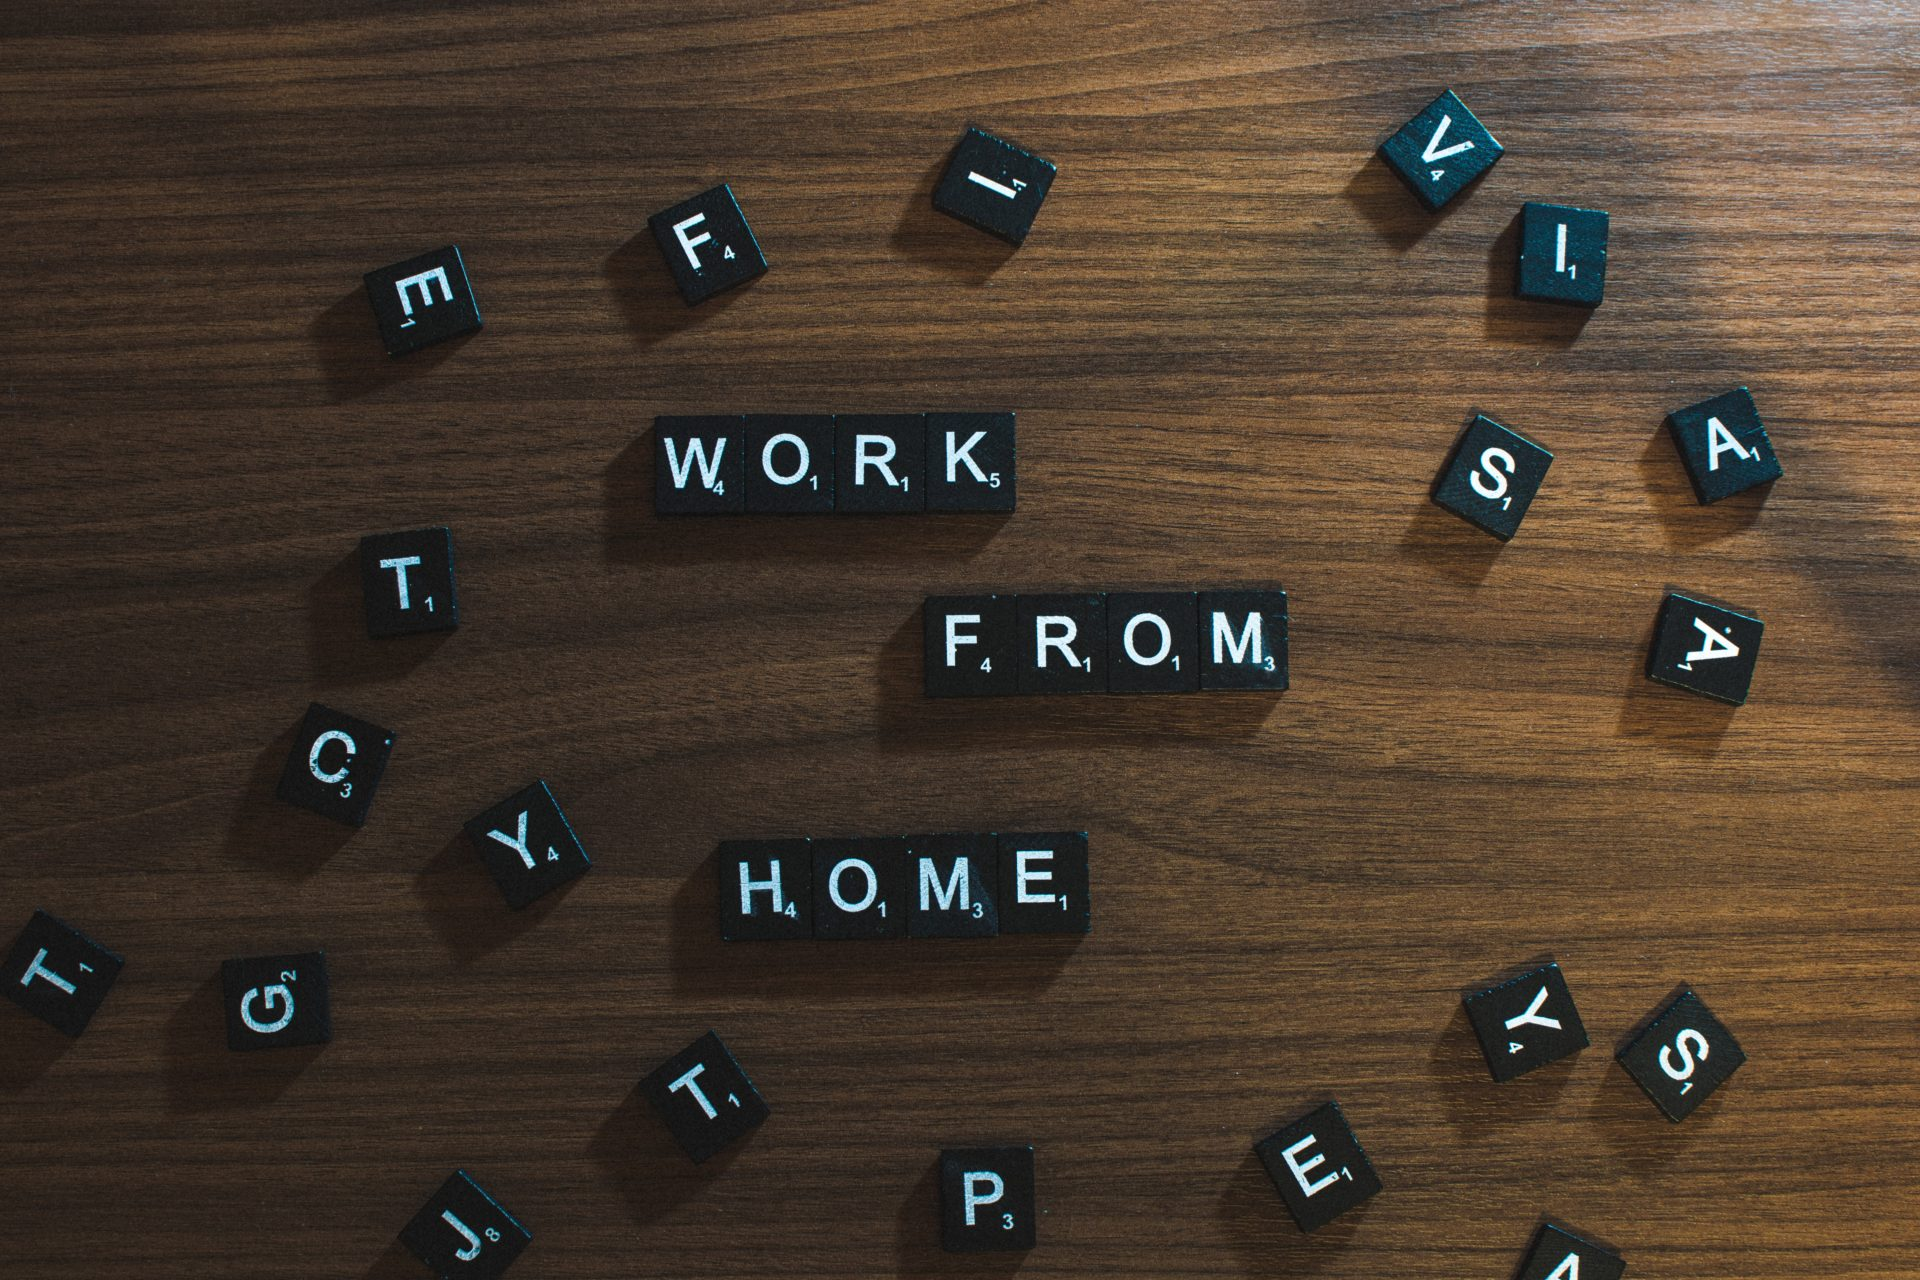 Scrabble pieces forming work from home on a desk